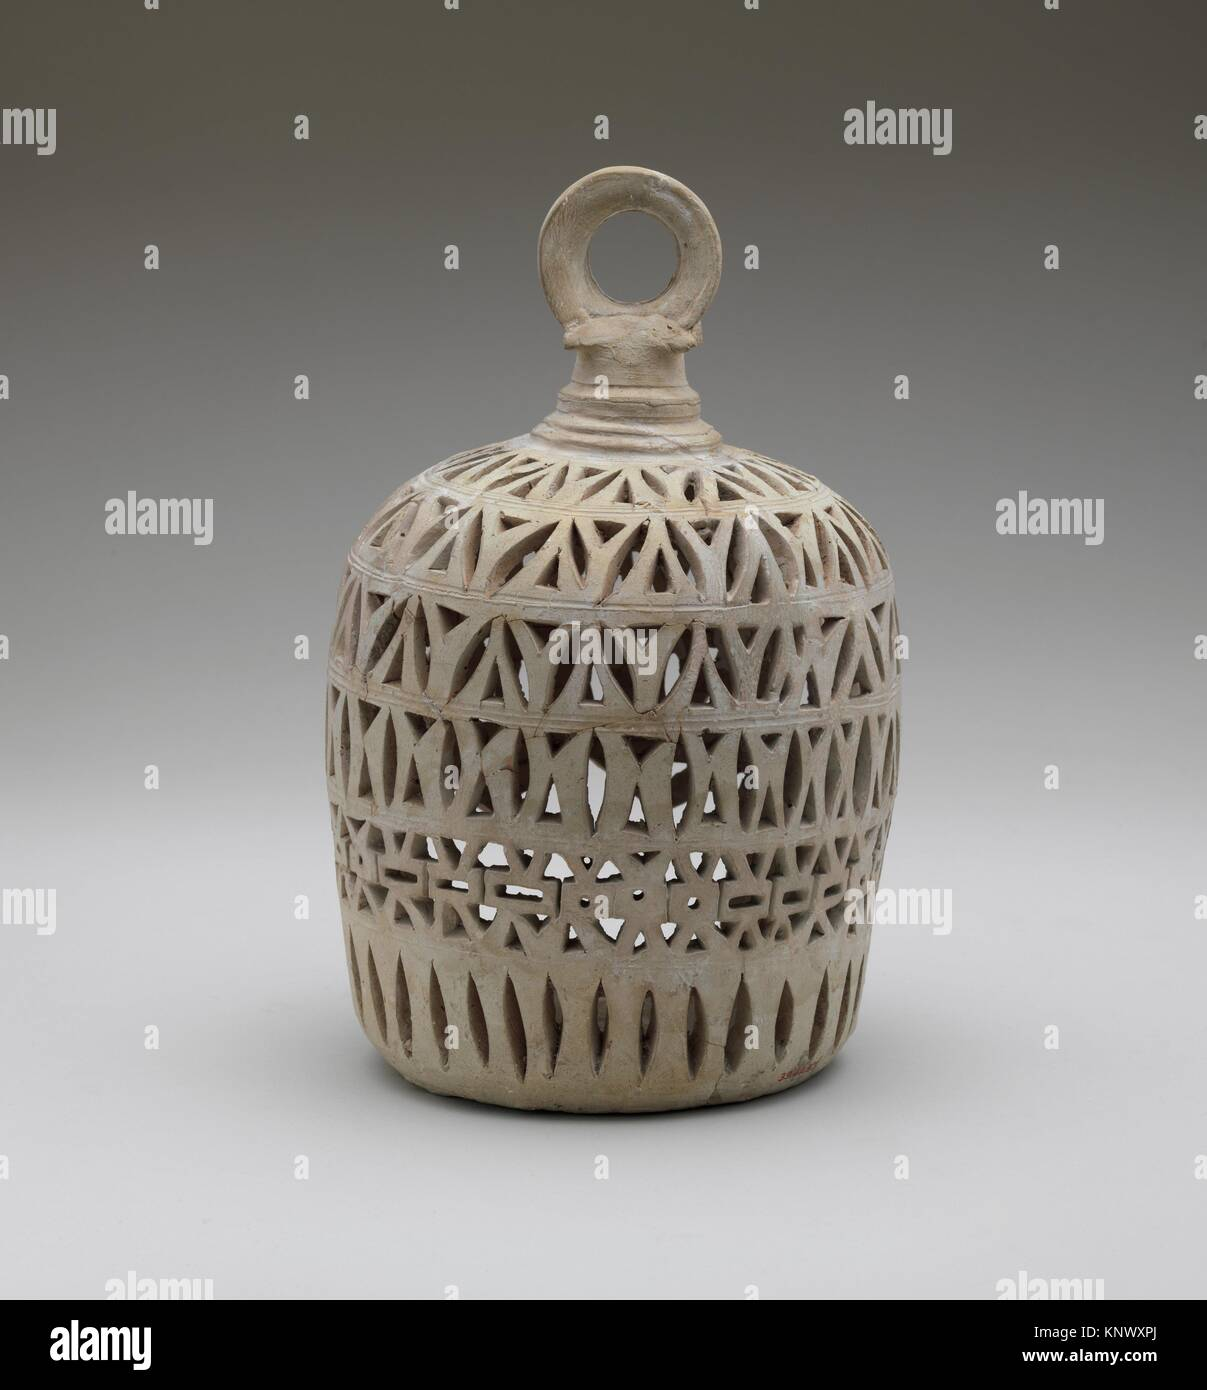 Lantern for a Lamp. Object Name: Lantern; Date: 9th-10th century; Geography: Attributed to Iran, Nishapur. Excavated - Stock Image